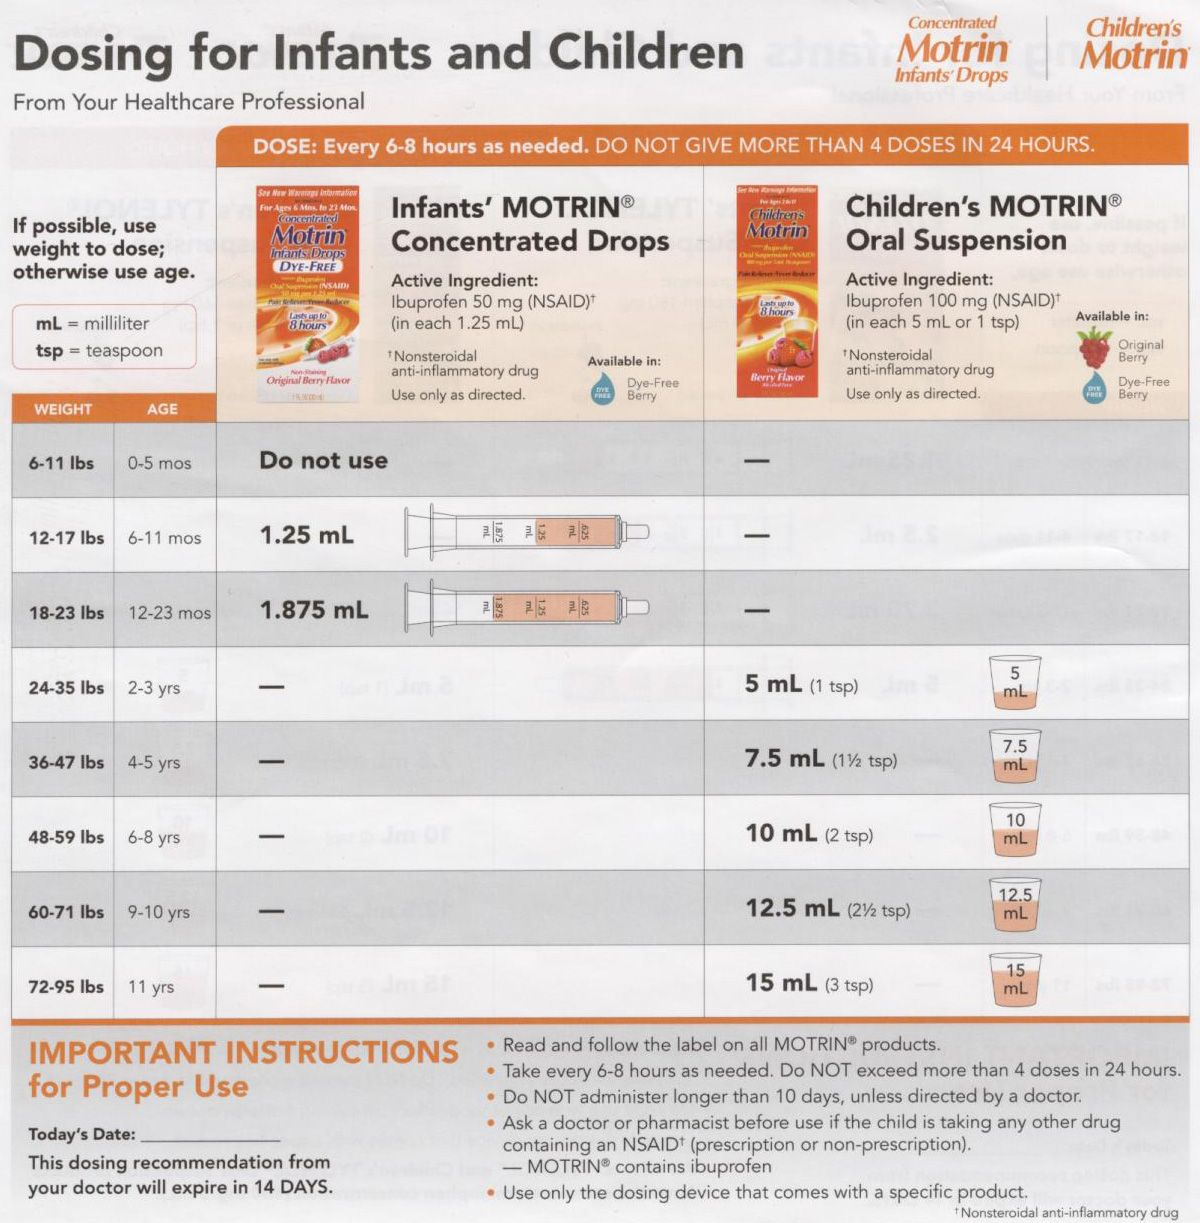 Infant tylenol dosage chart google search also oliver james rh pinterest